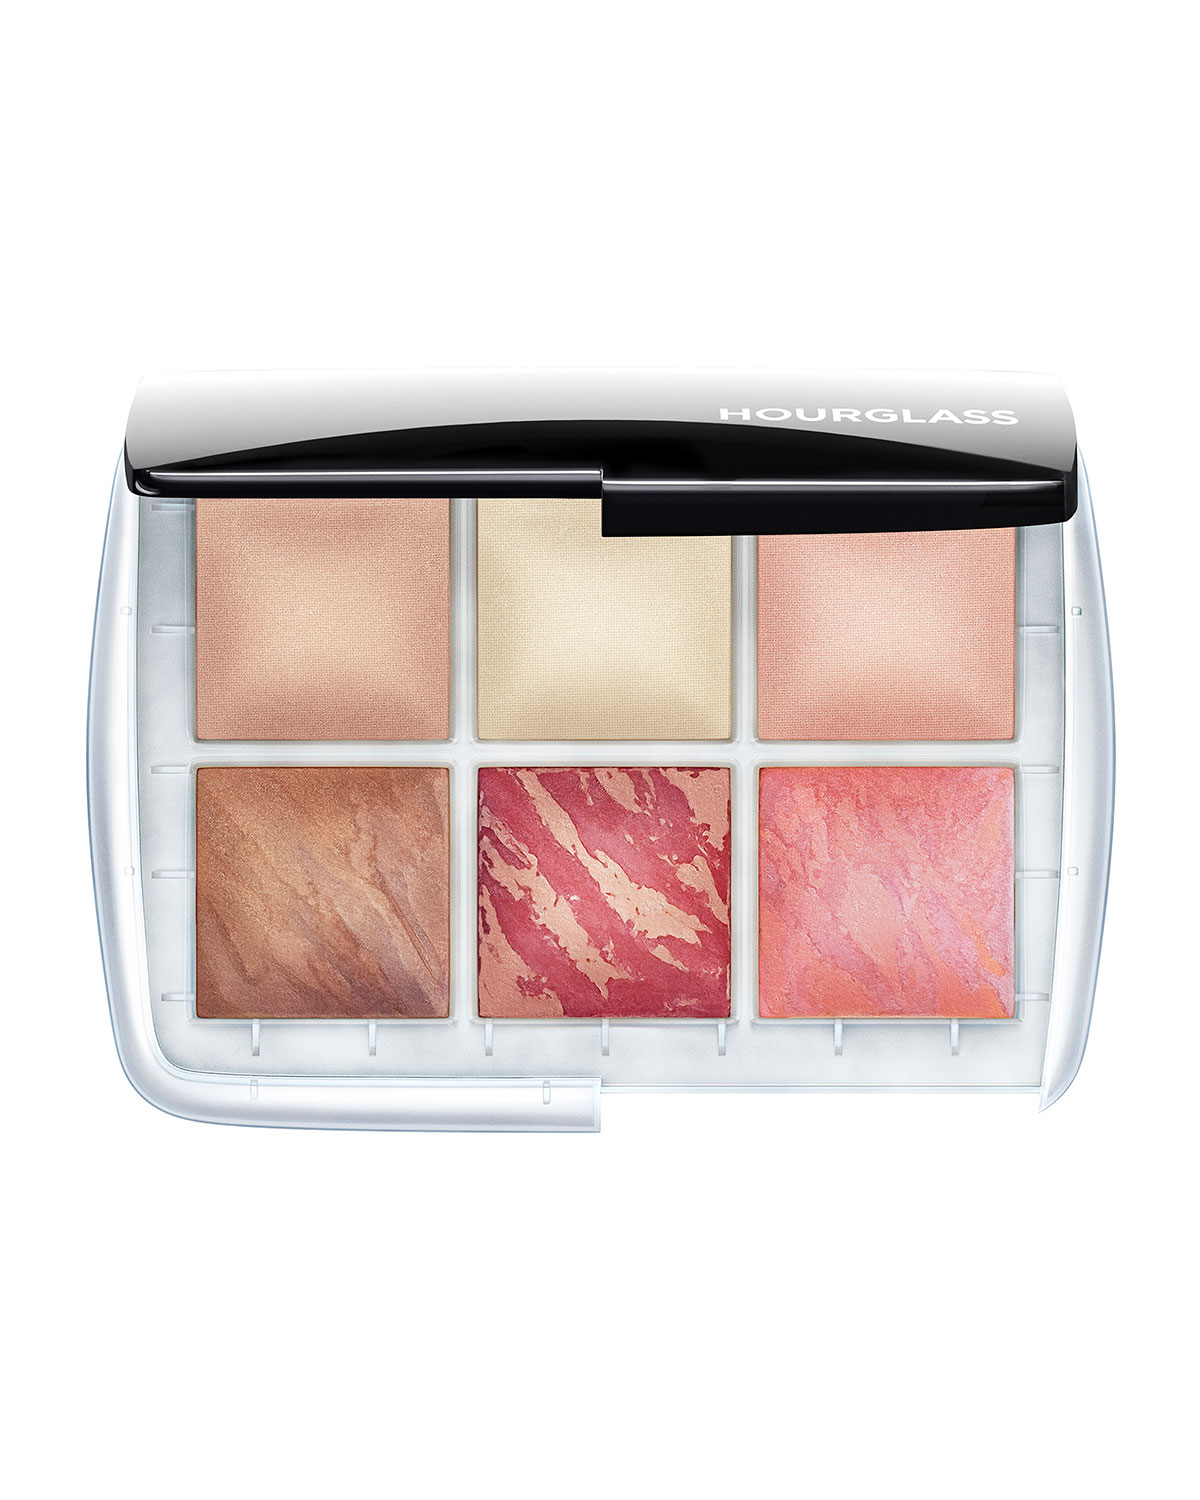 Ghost Ambient Lighting Edit by Hourglass Cosmetics